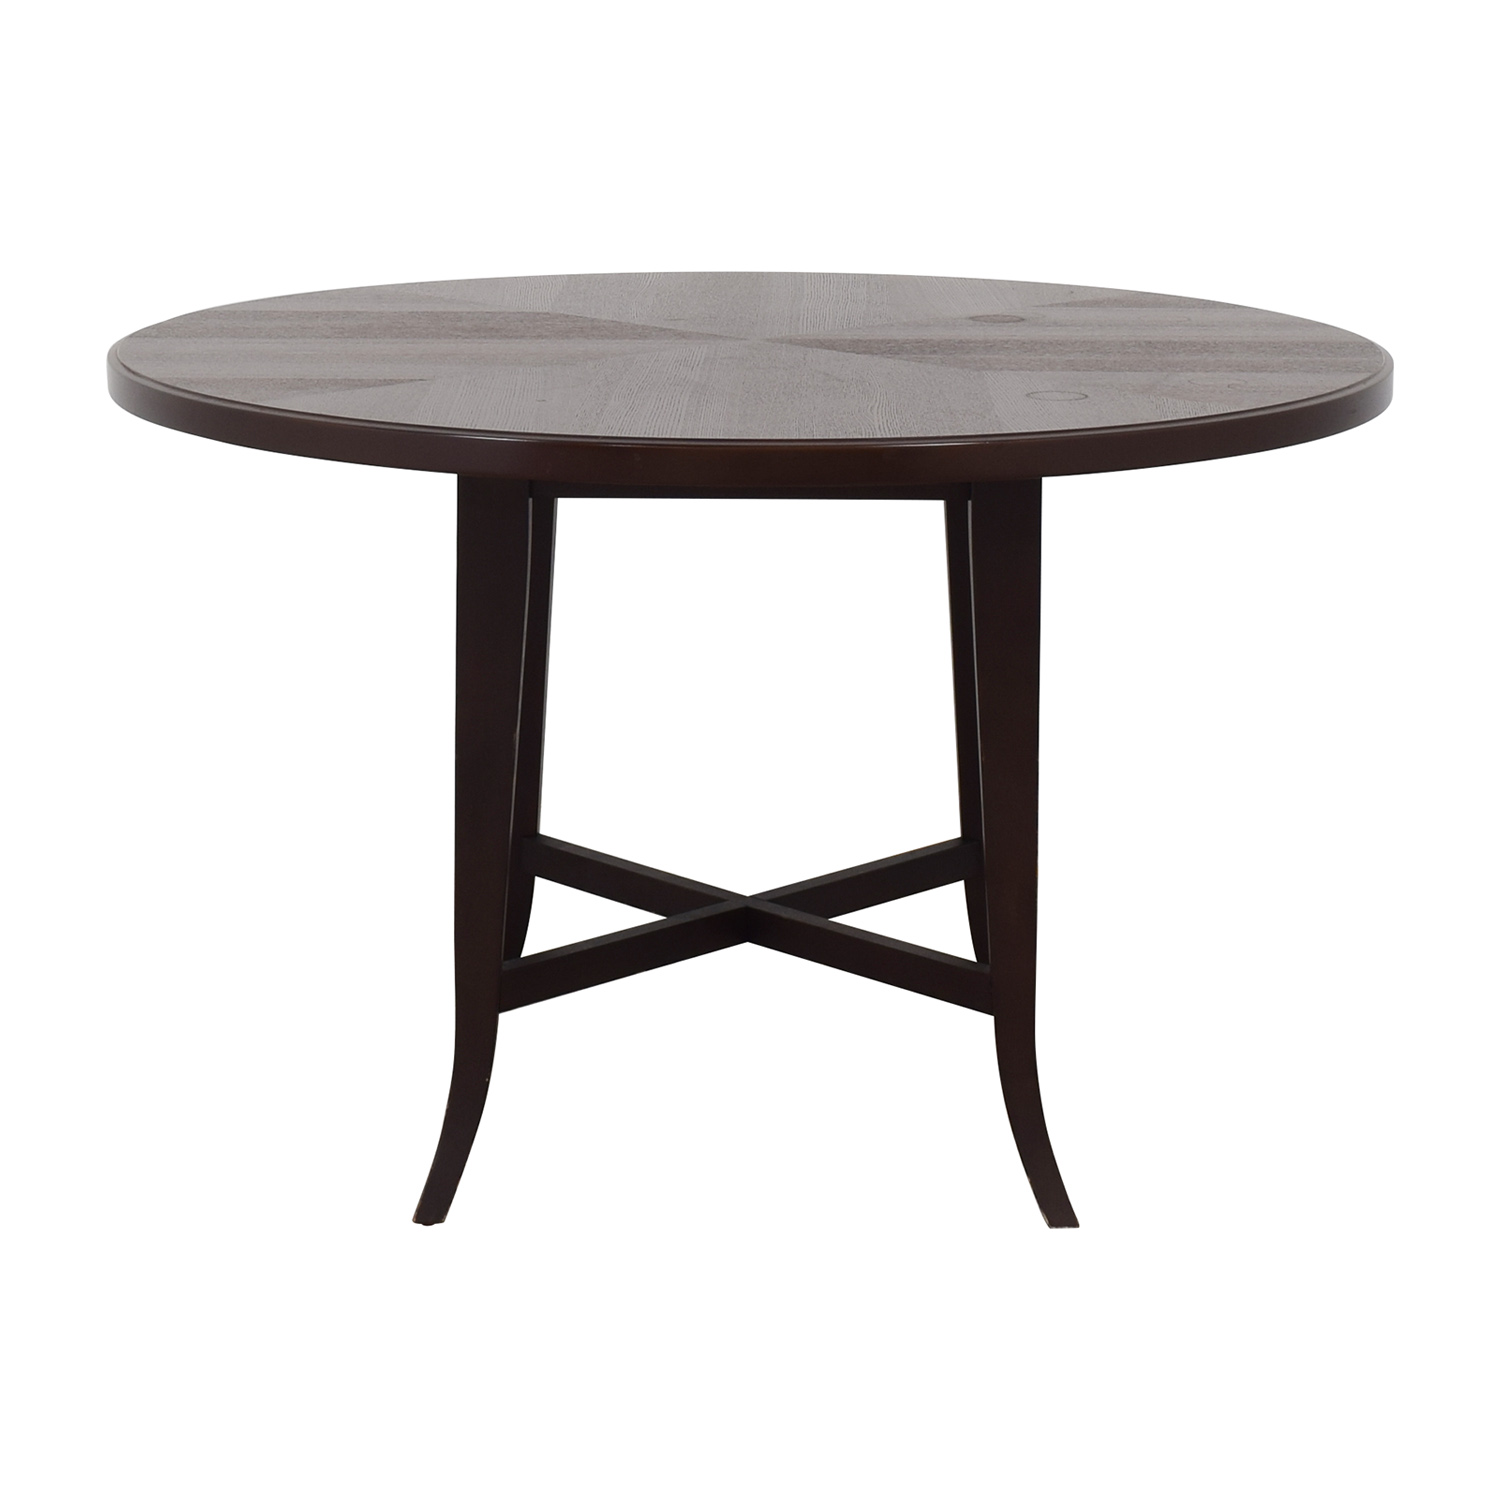 shop Crate & Barrel Round Dining Table Crate & Barrel Tables